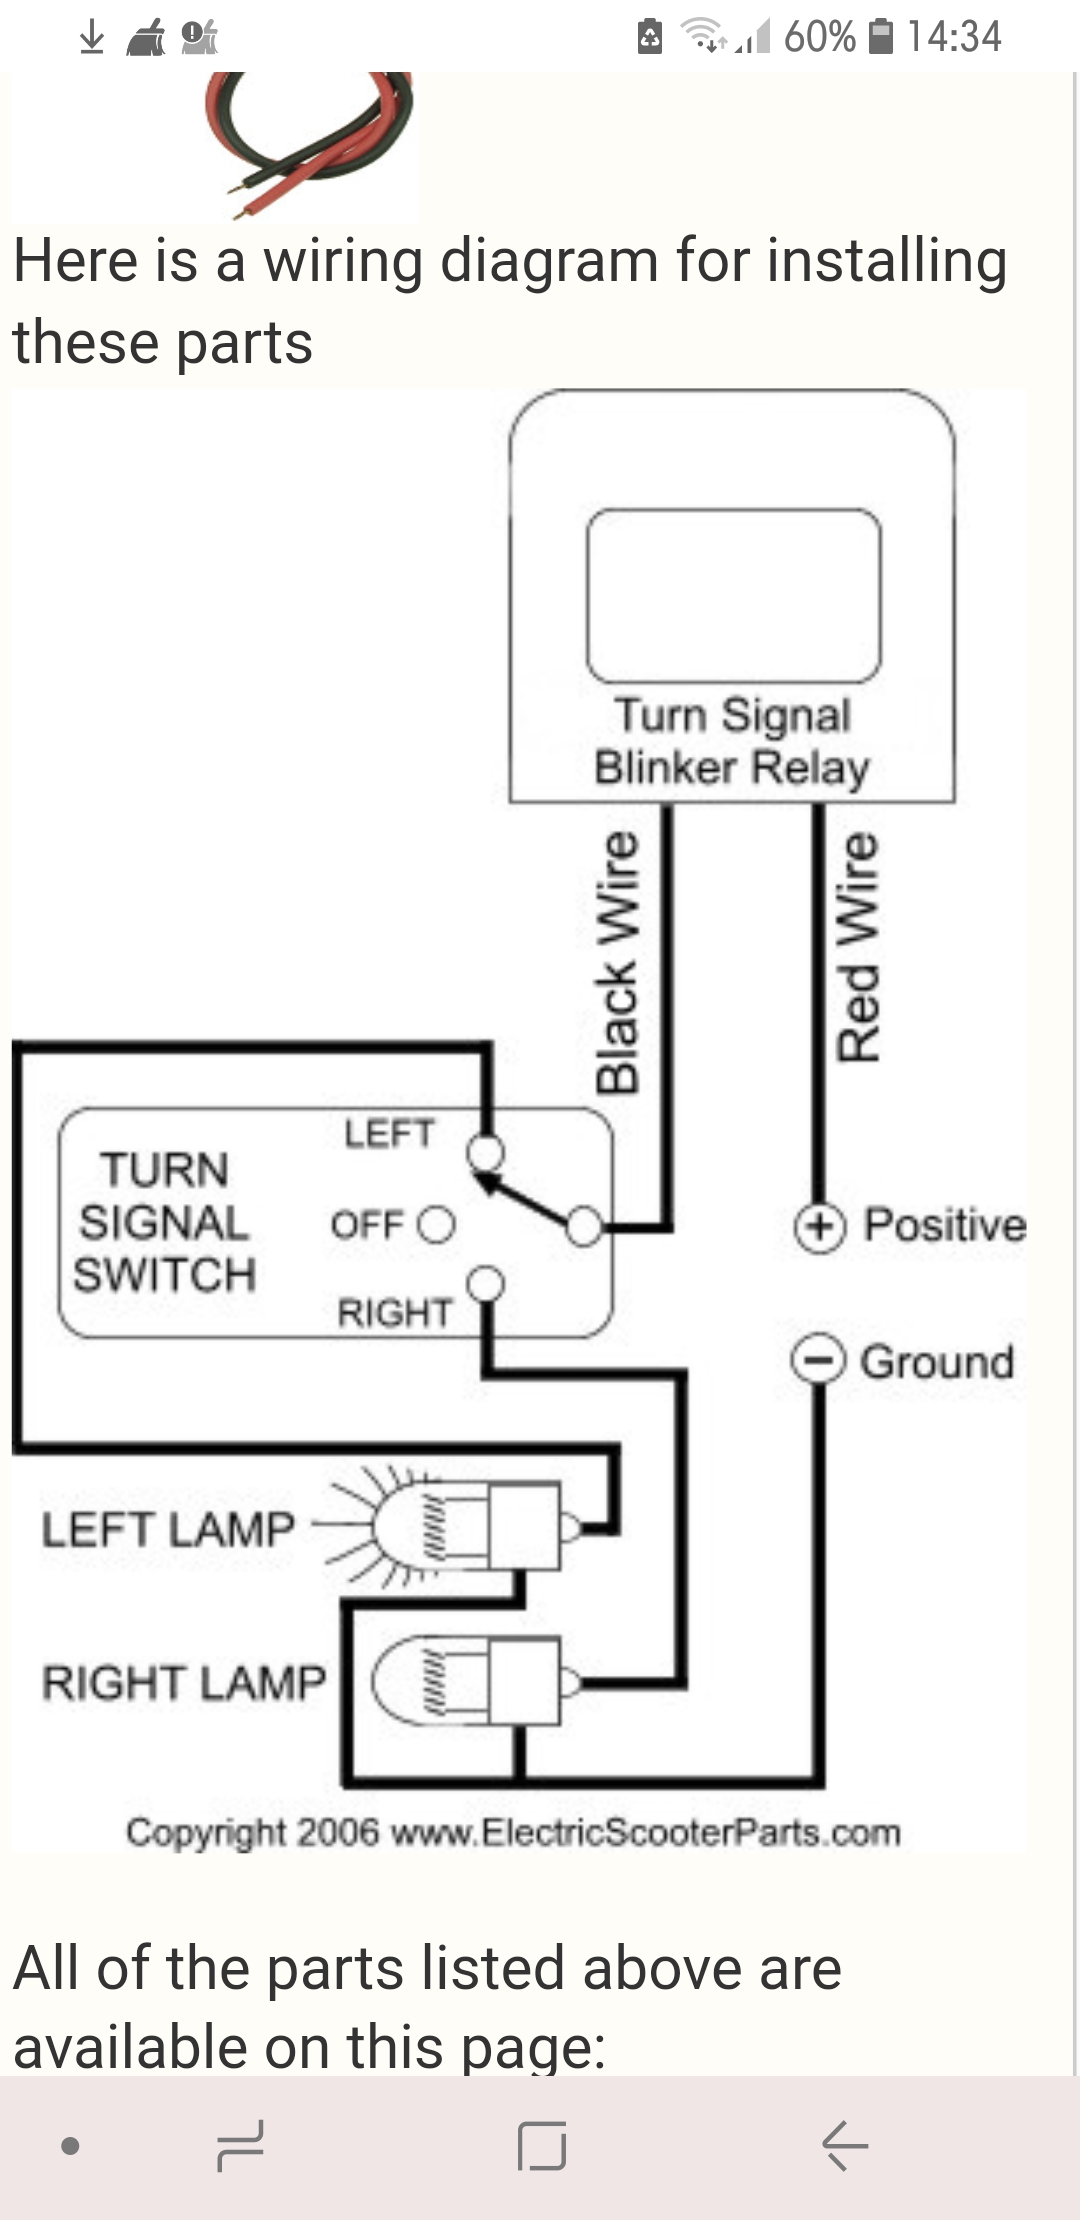 Wiring Diagram For Indicator